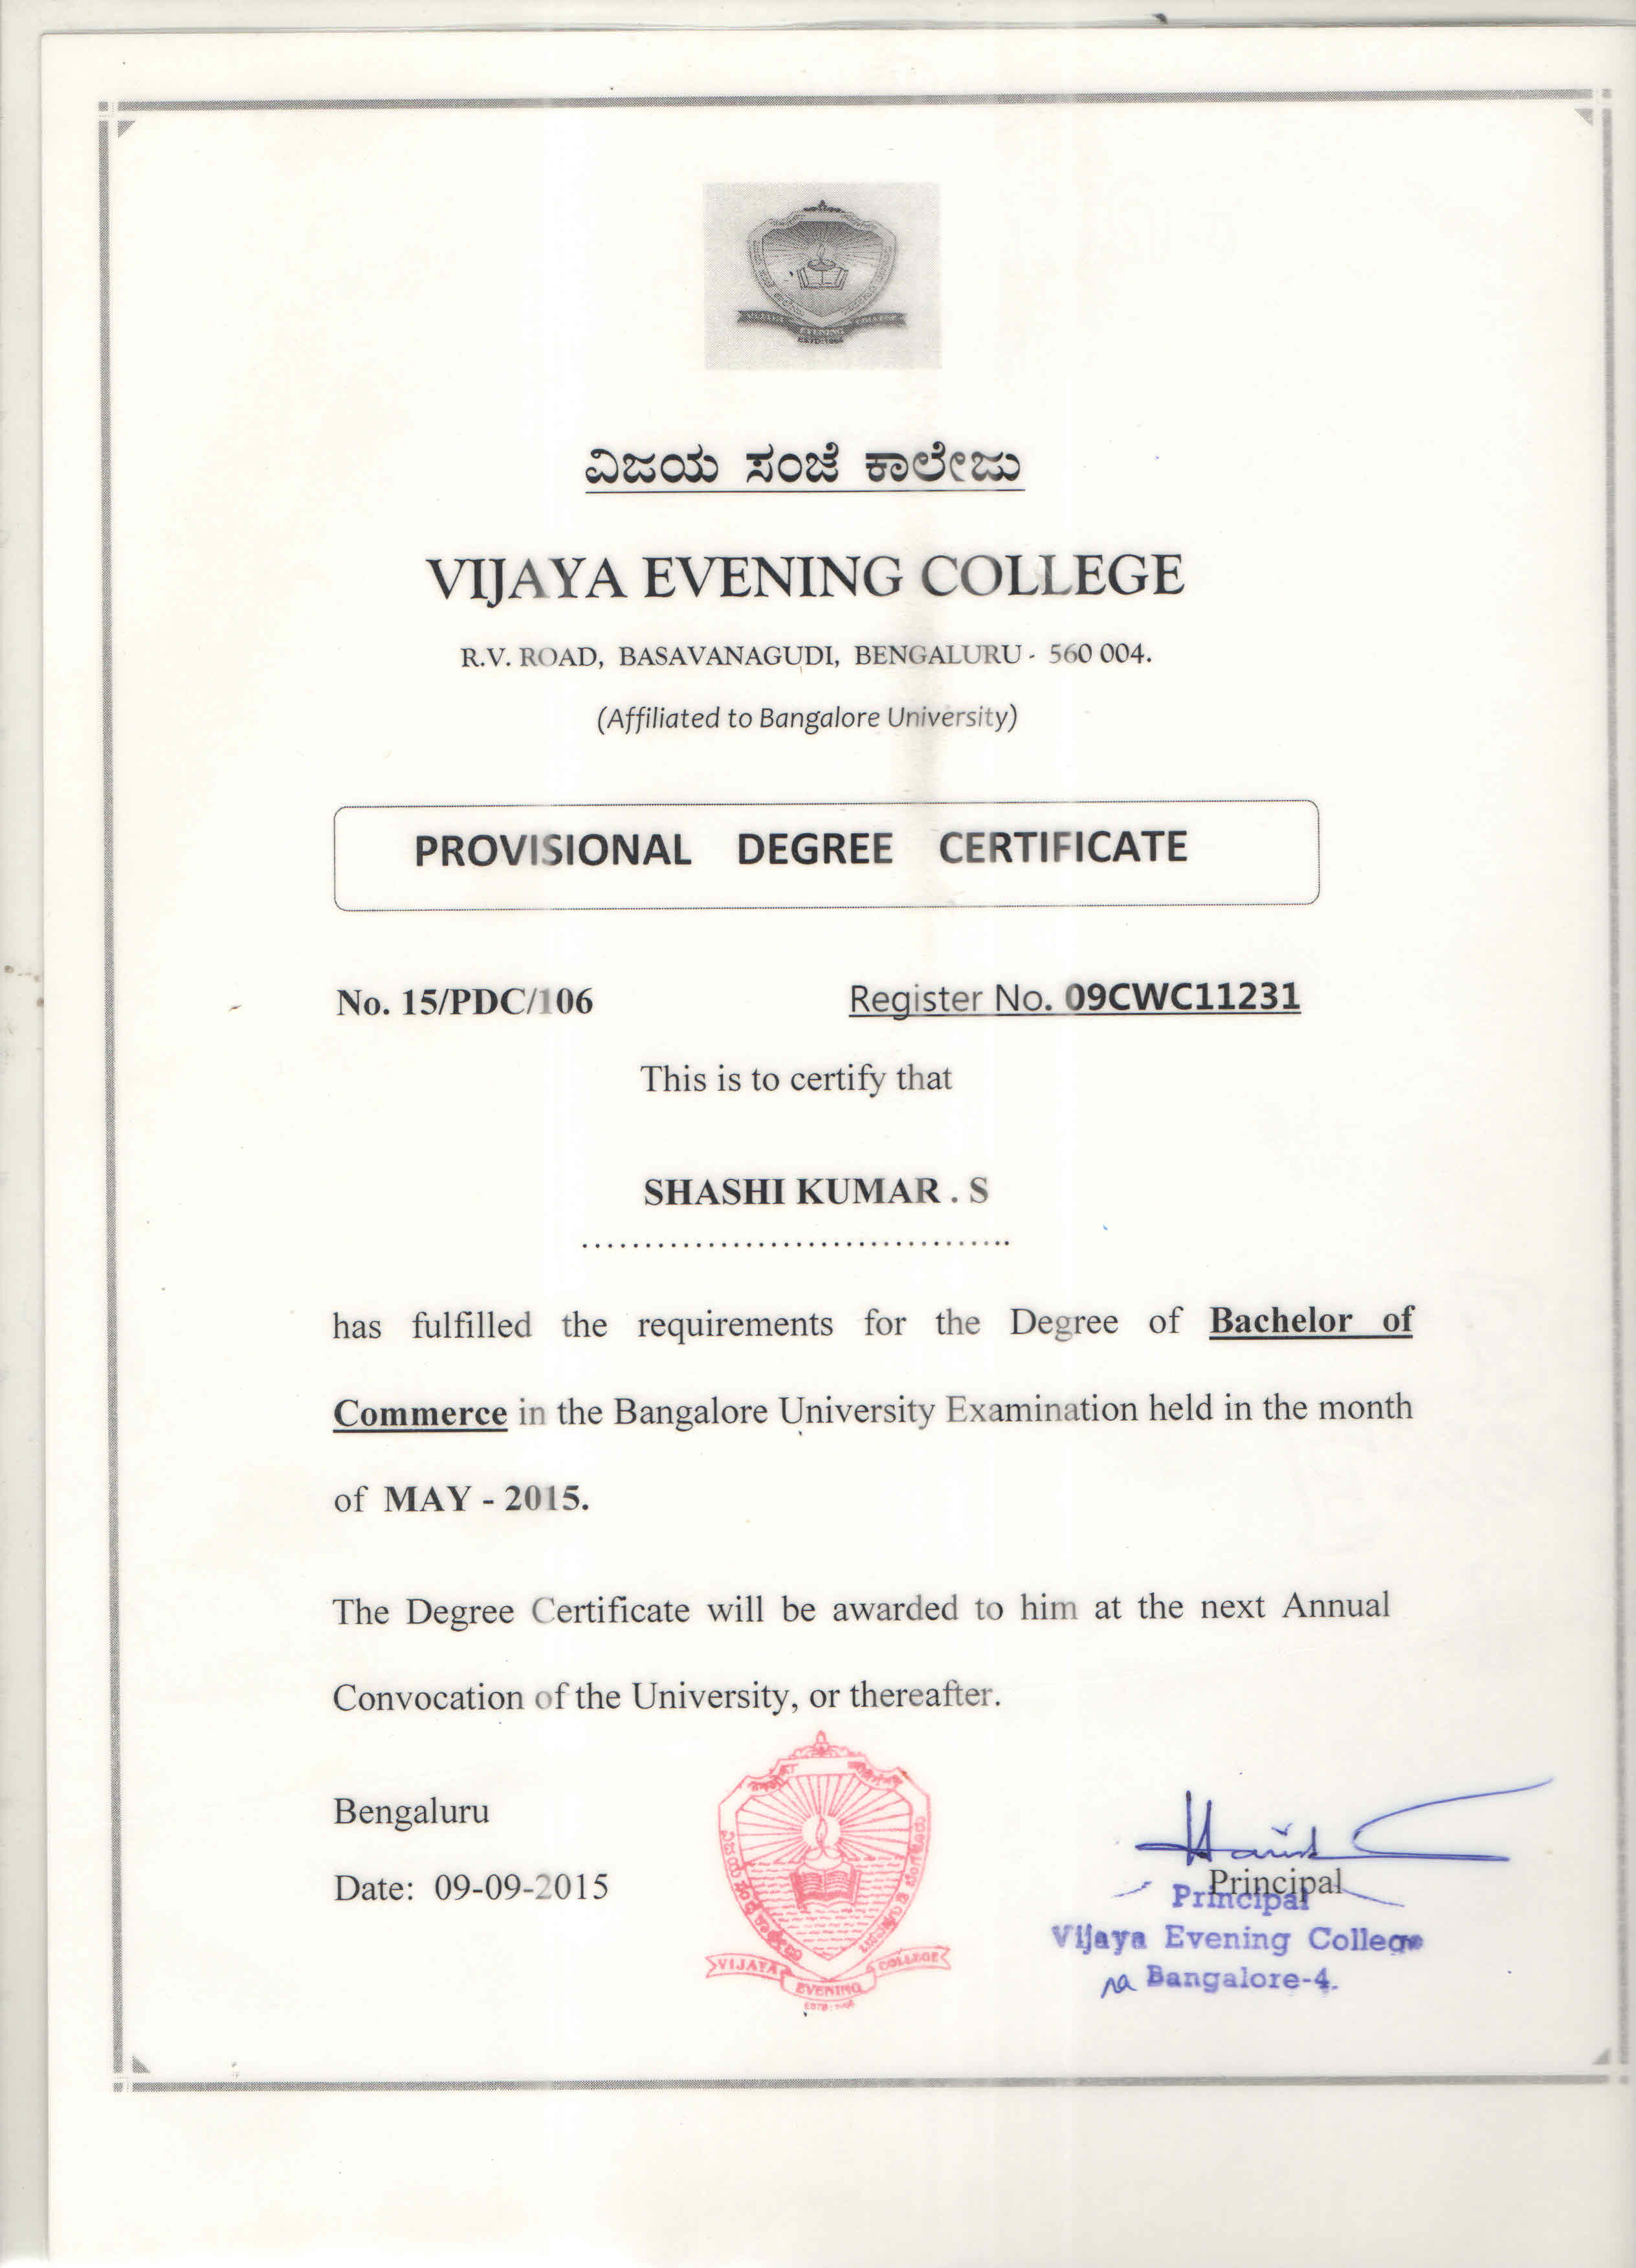 Pdc certificate best design sertificate 2018 degree certificate sample format new provisional altavistaventures Image collections